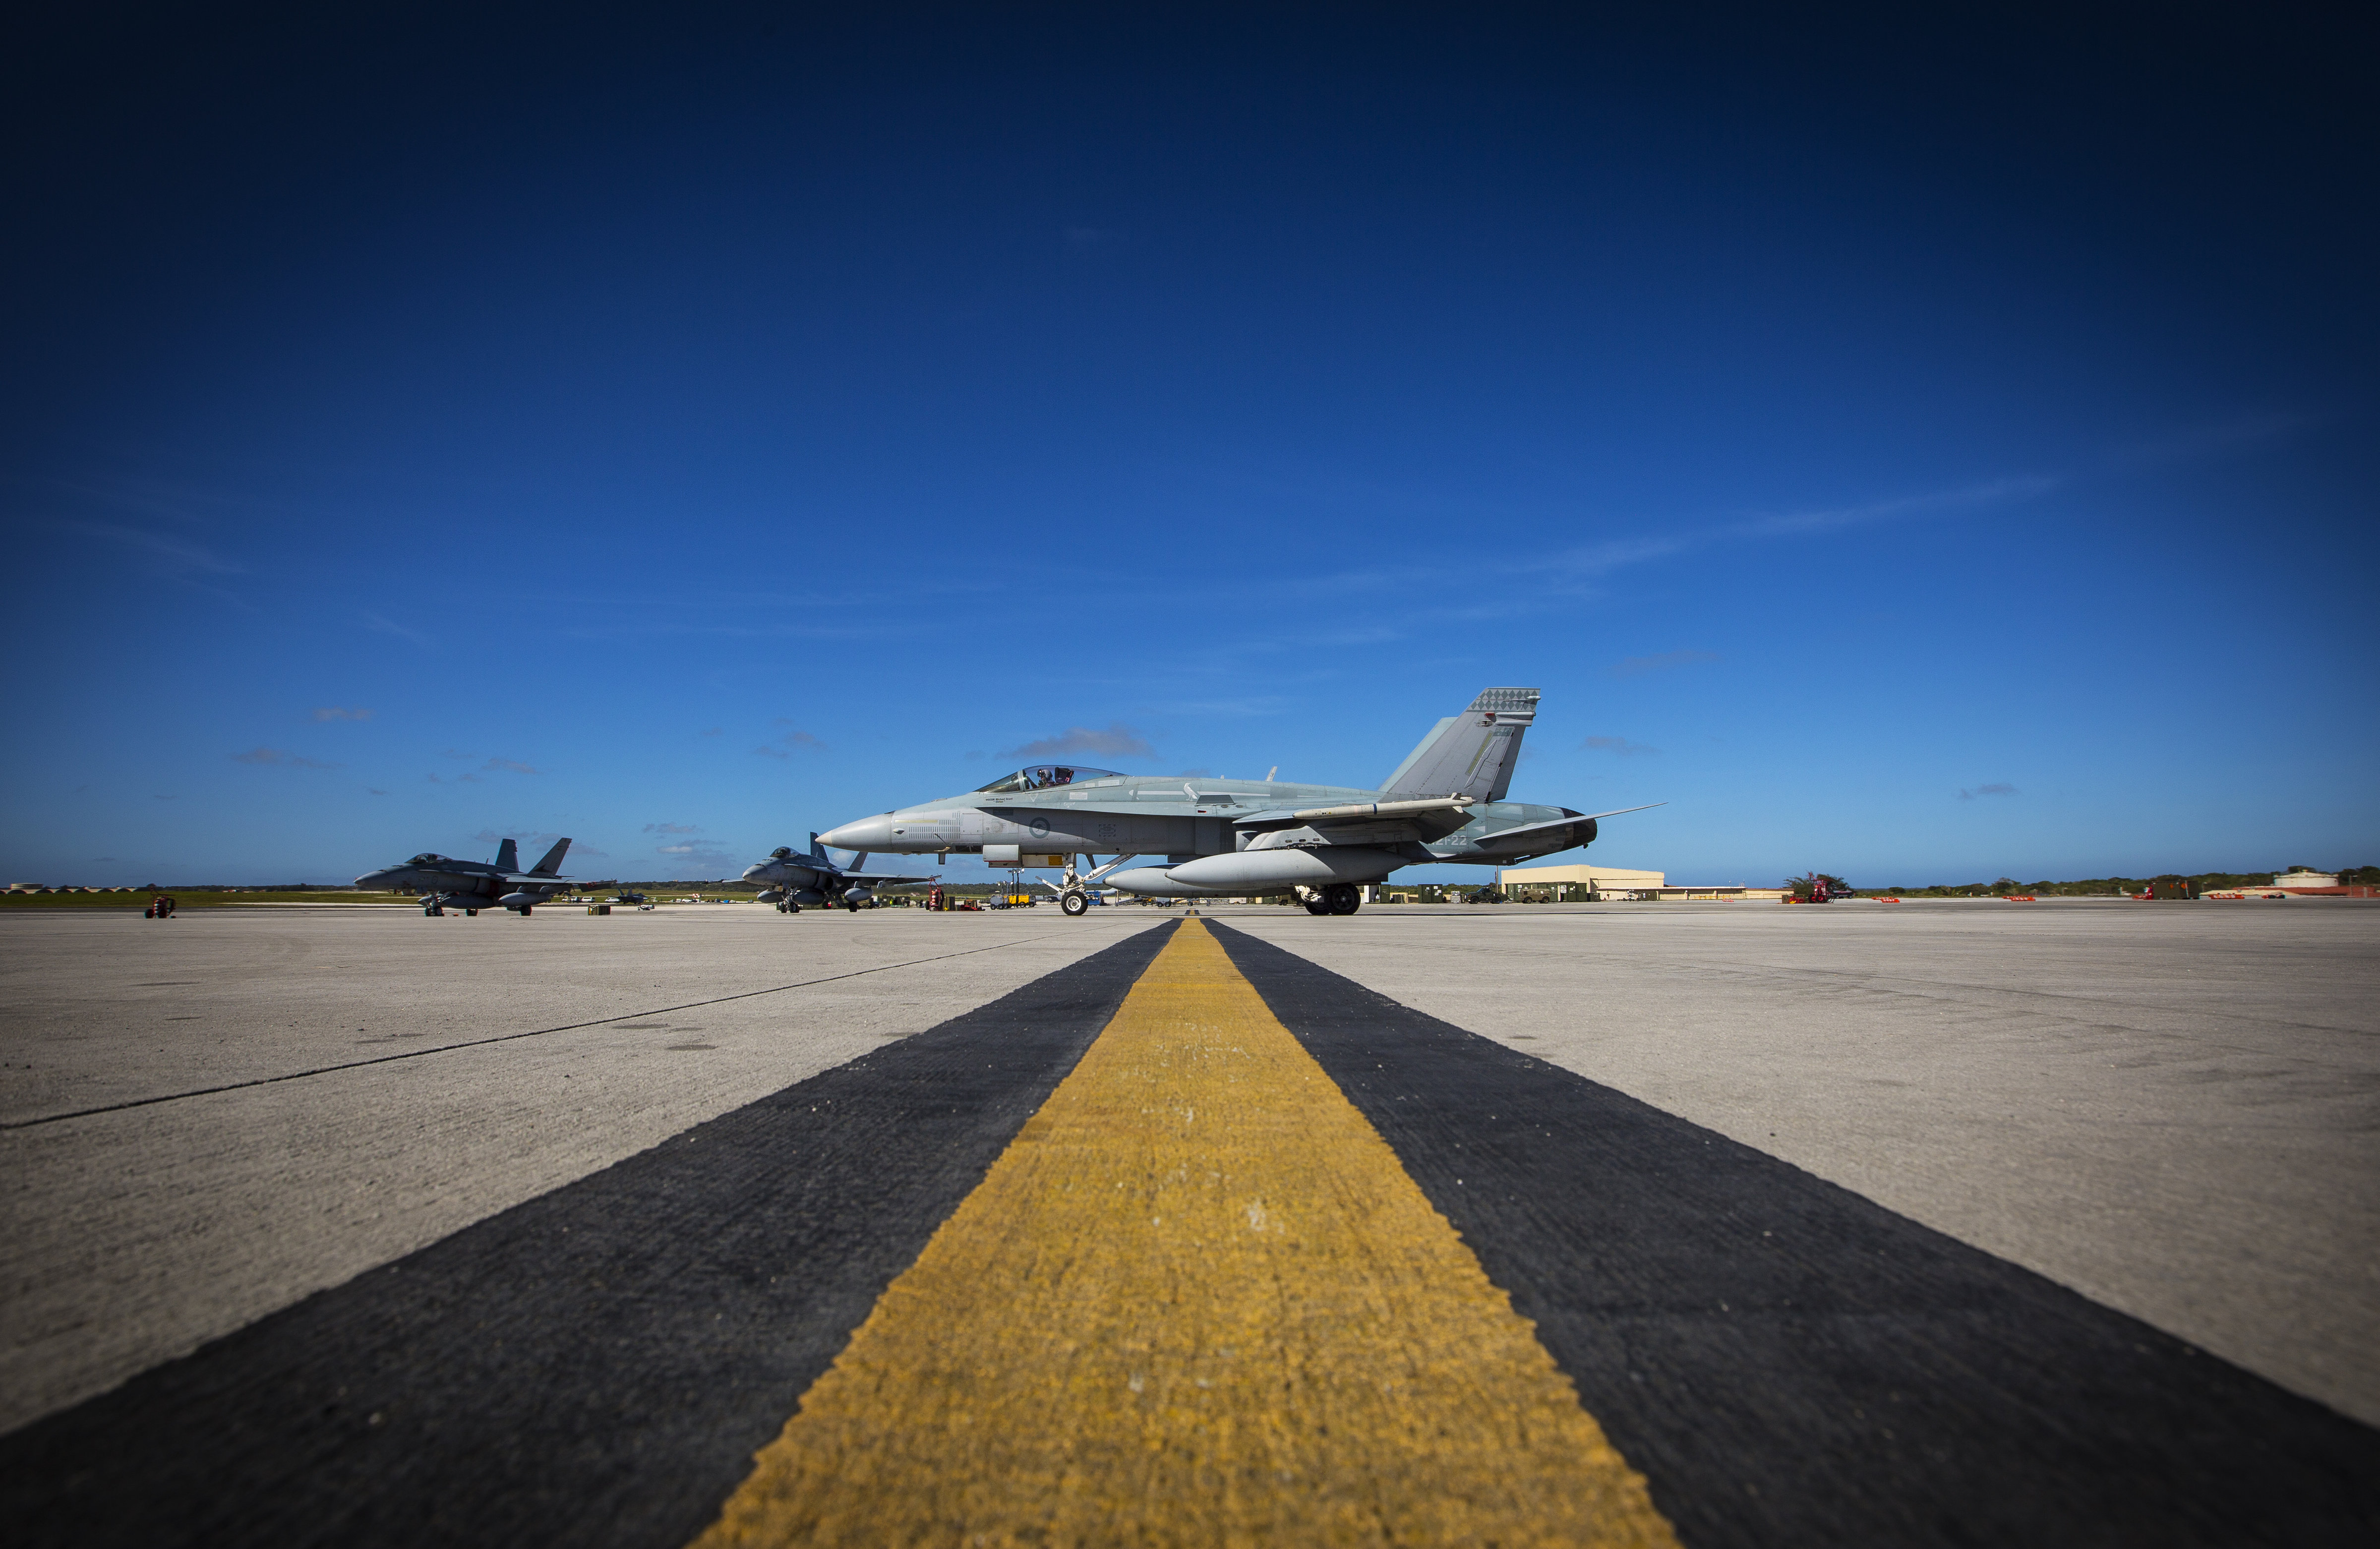 Australia To Sell Its Fleet Of F/A-18 Hornet Fighter Jets To U.S. Contractor